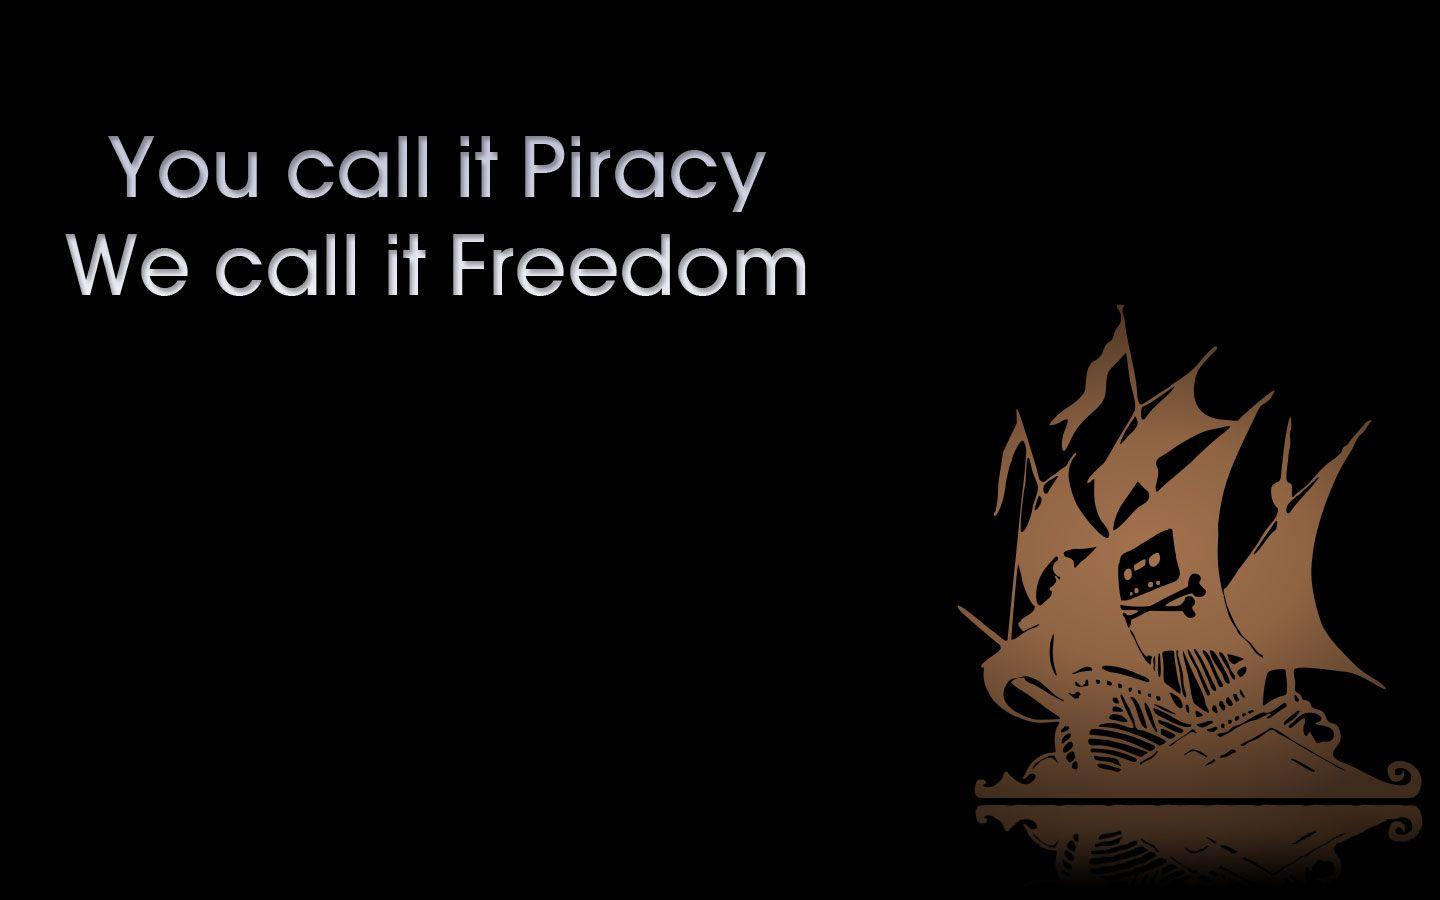 piracy slogan